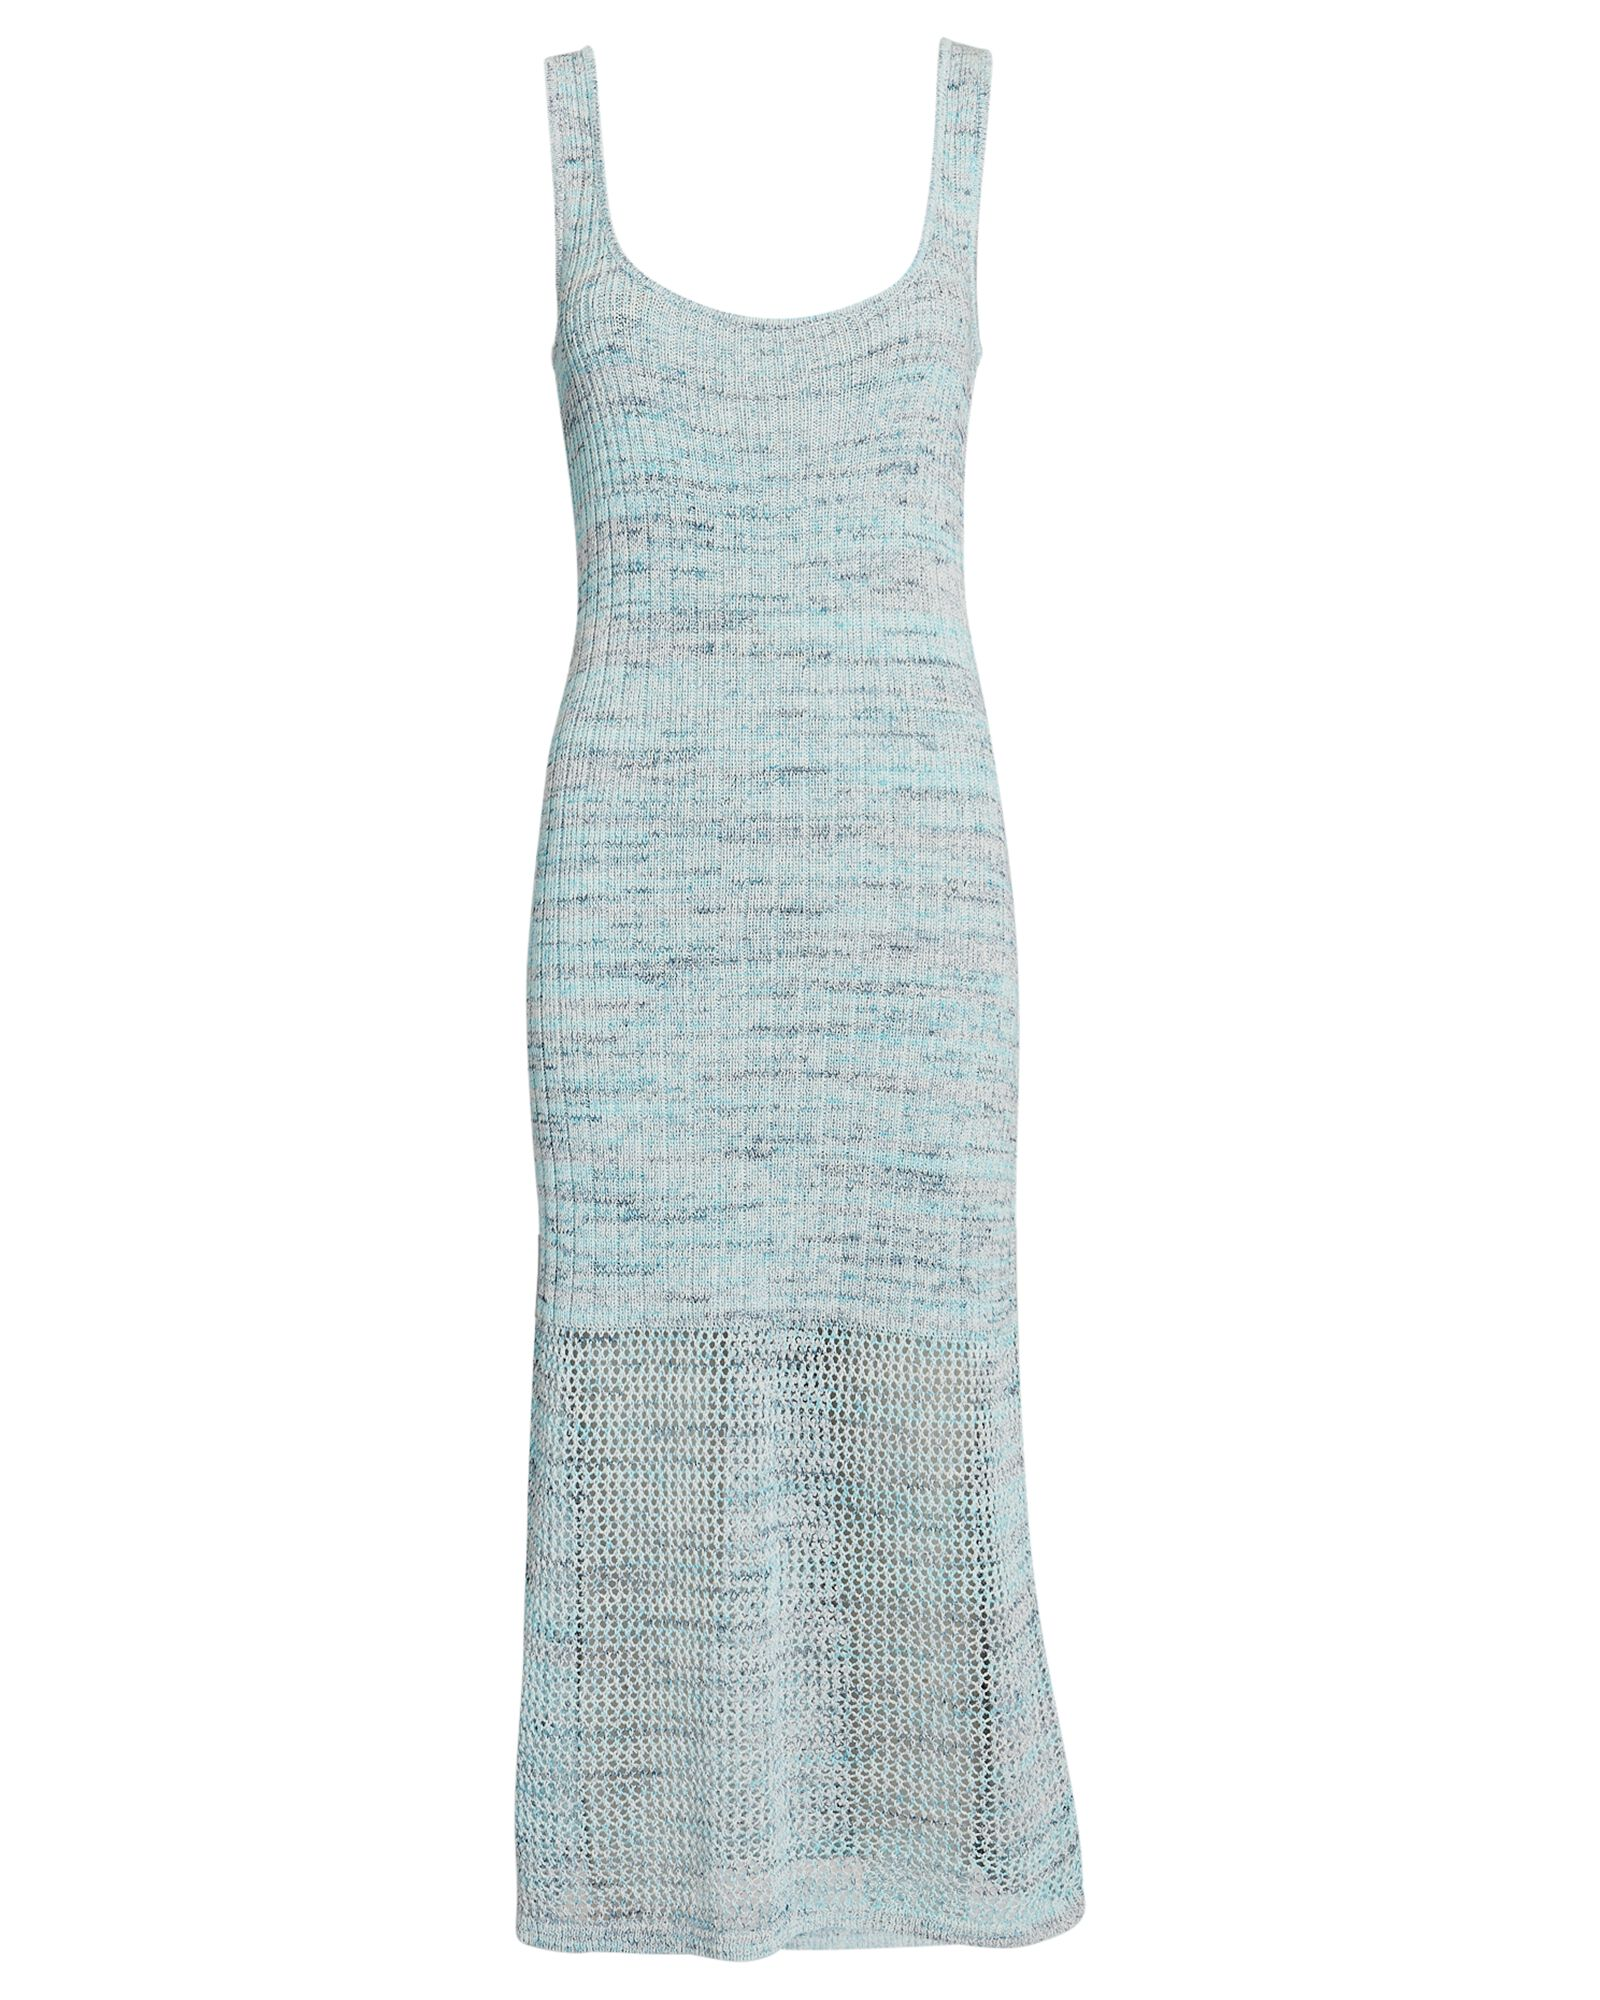 Preston Sleeveless Knit Dress, BLUE-LT, hi-res